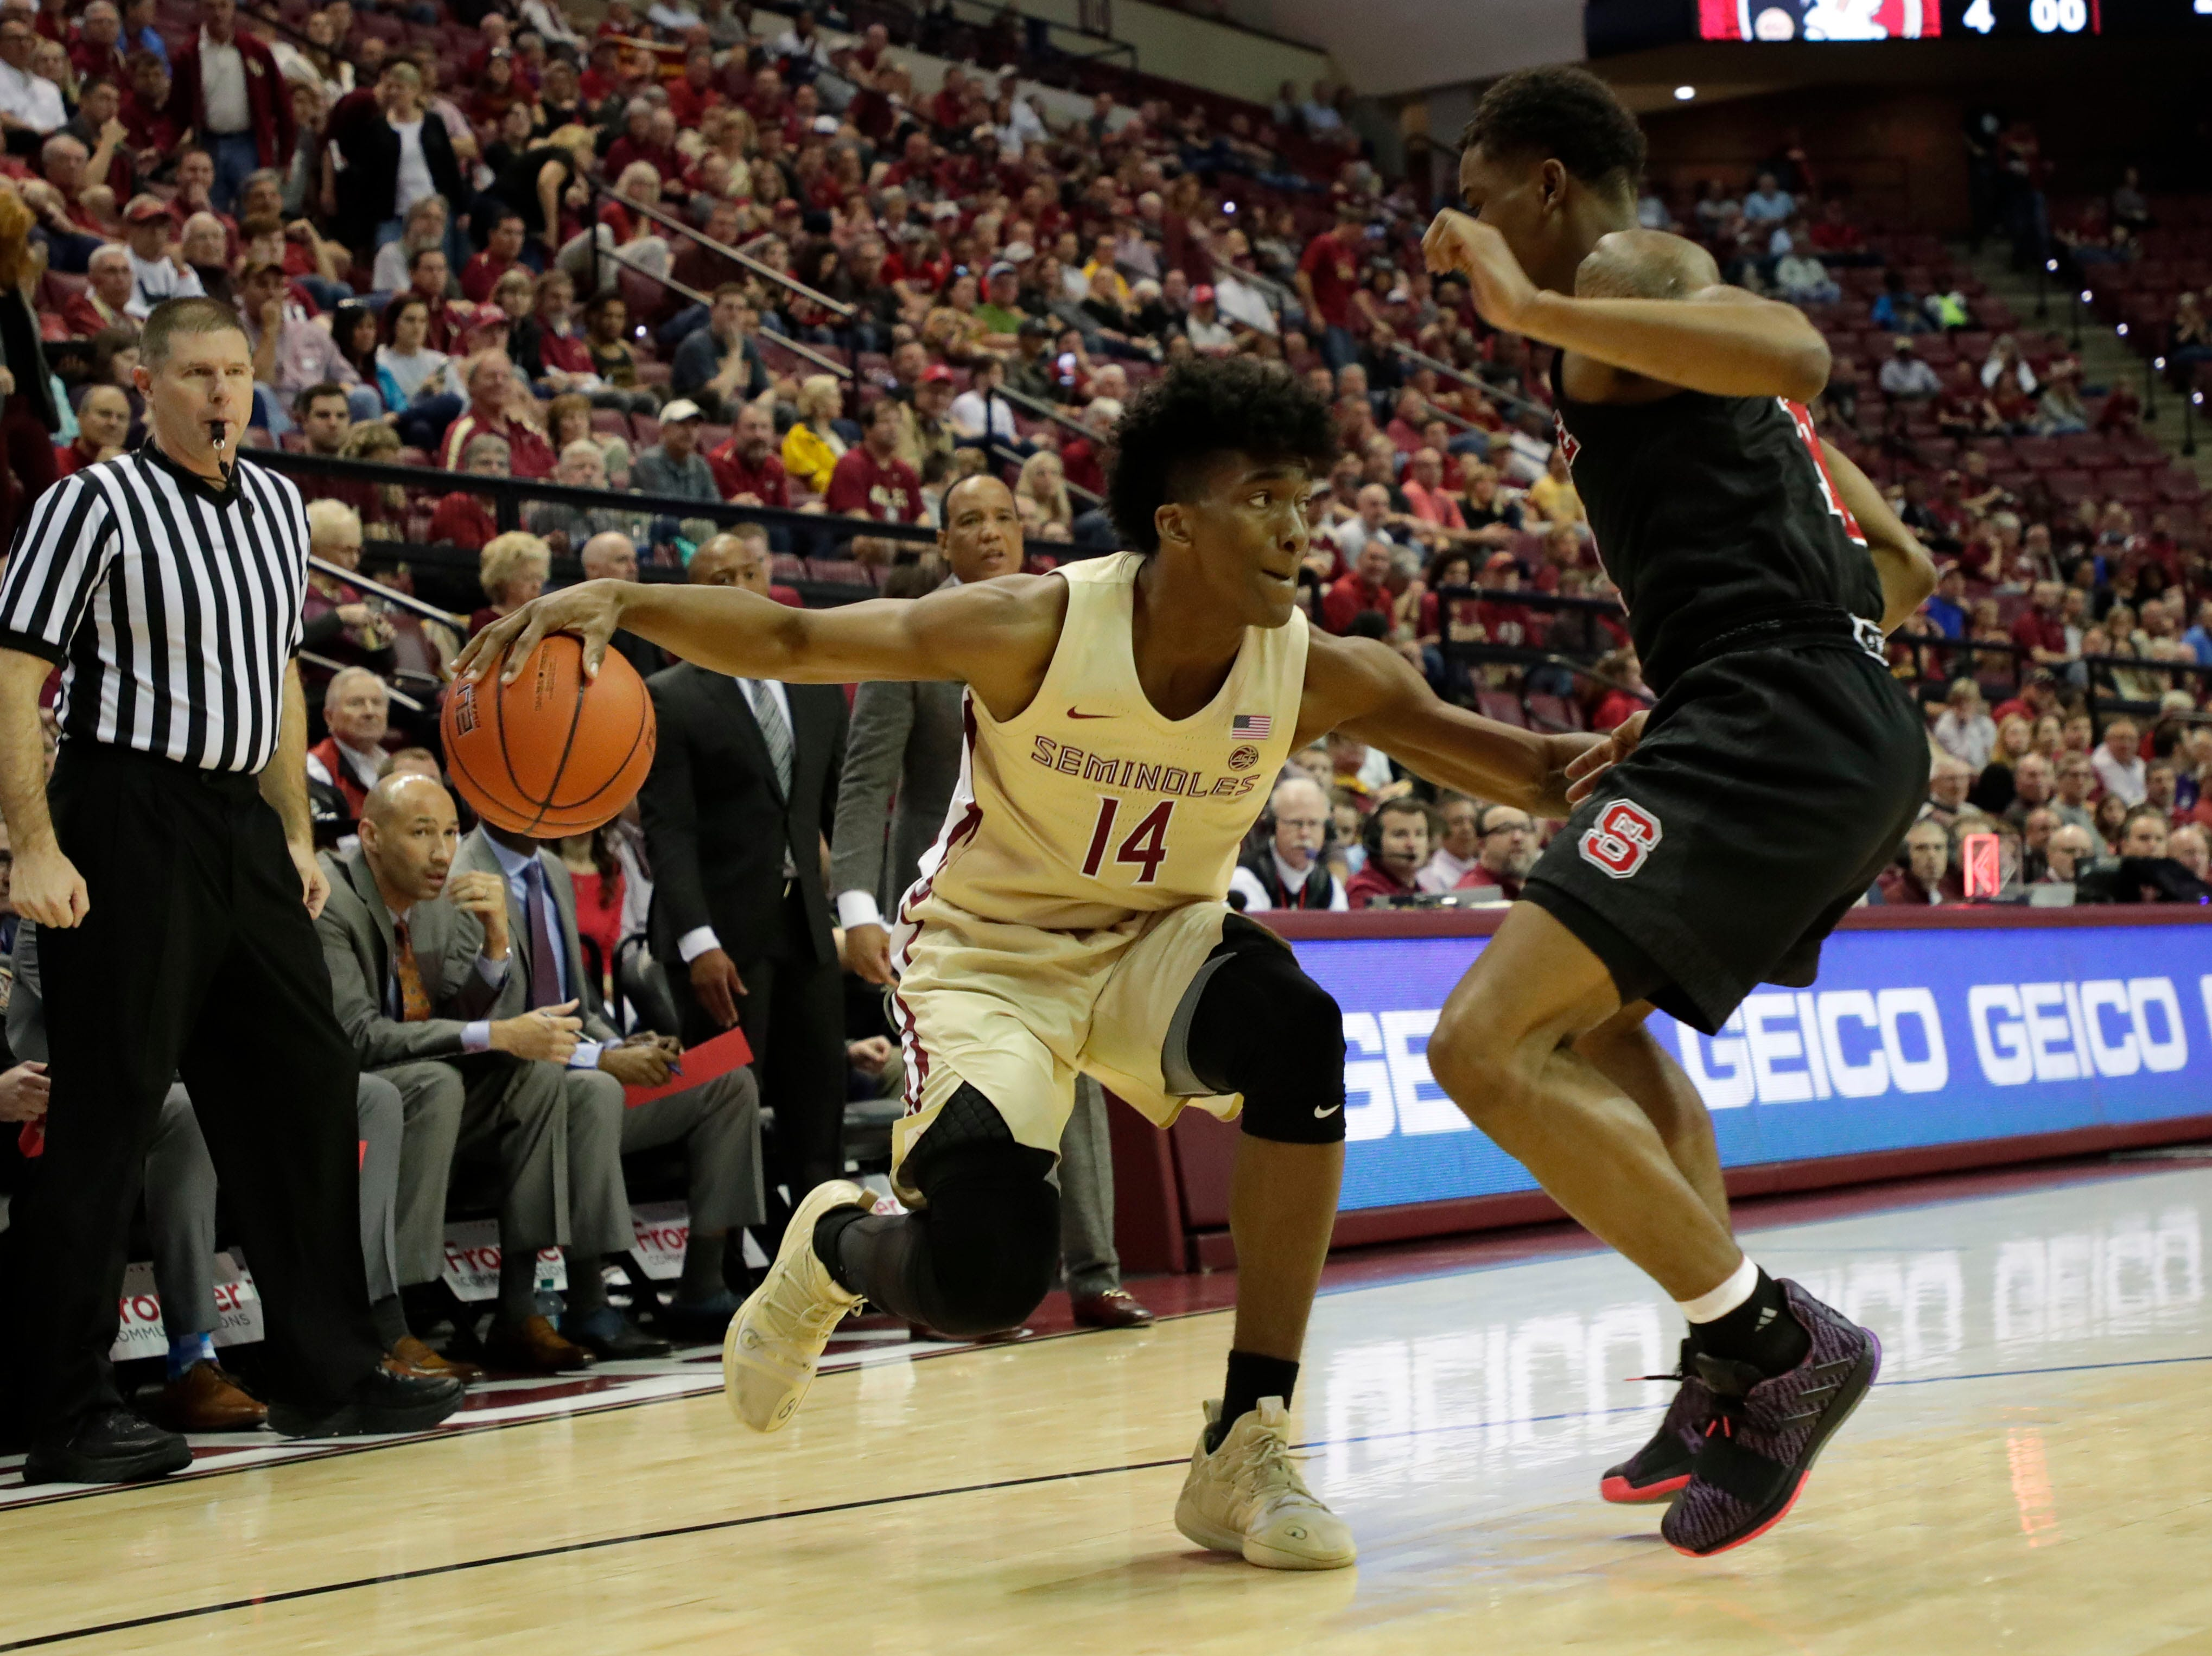 Florida State Seminoles guard Terance Mann (14) dribbles past his defender. The Florida State Seminoles host the NC State Wolfpack at the Tucker Civic Center Saturday, March 2, 2019.